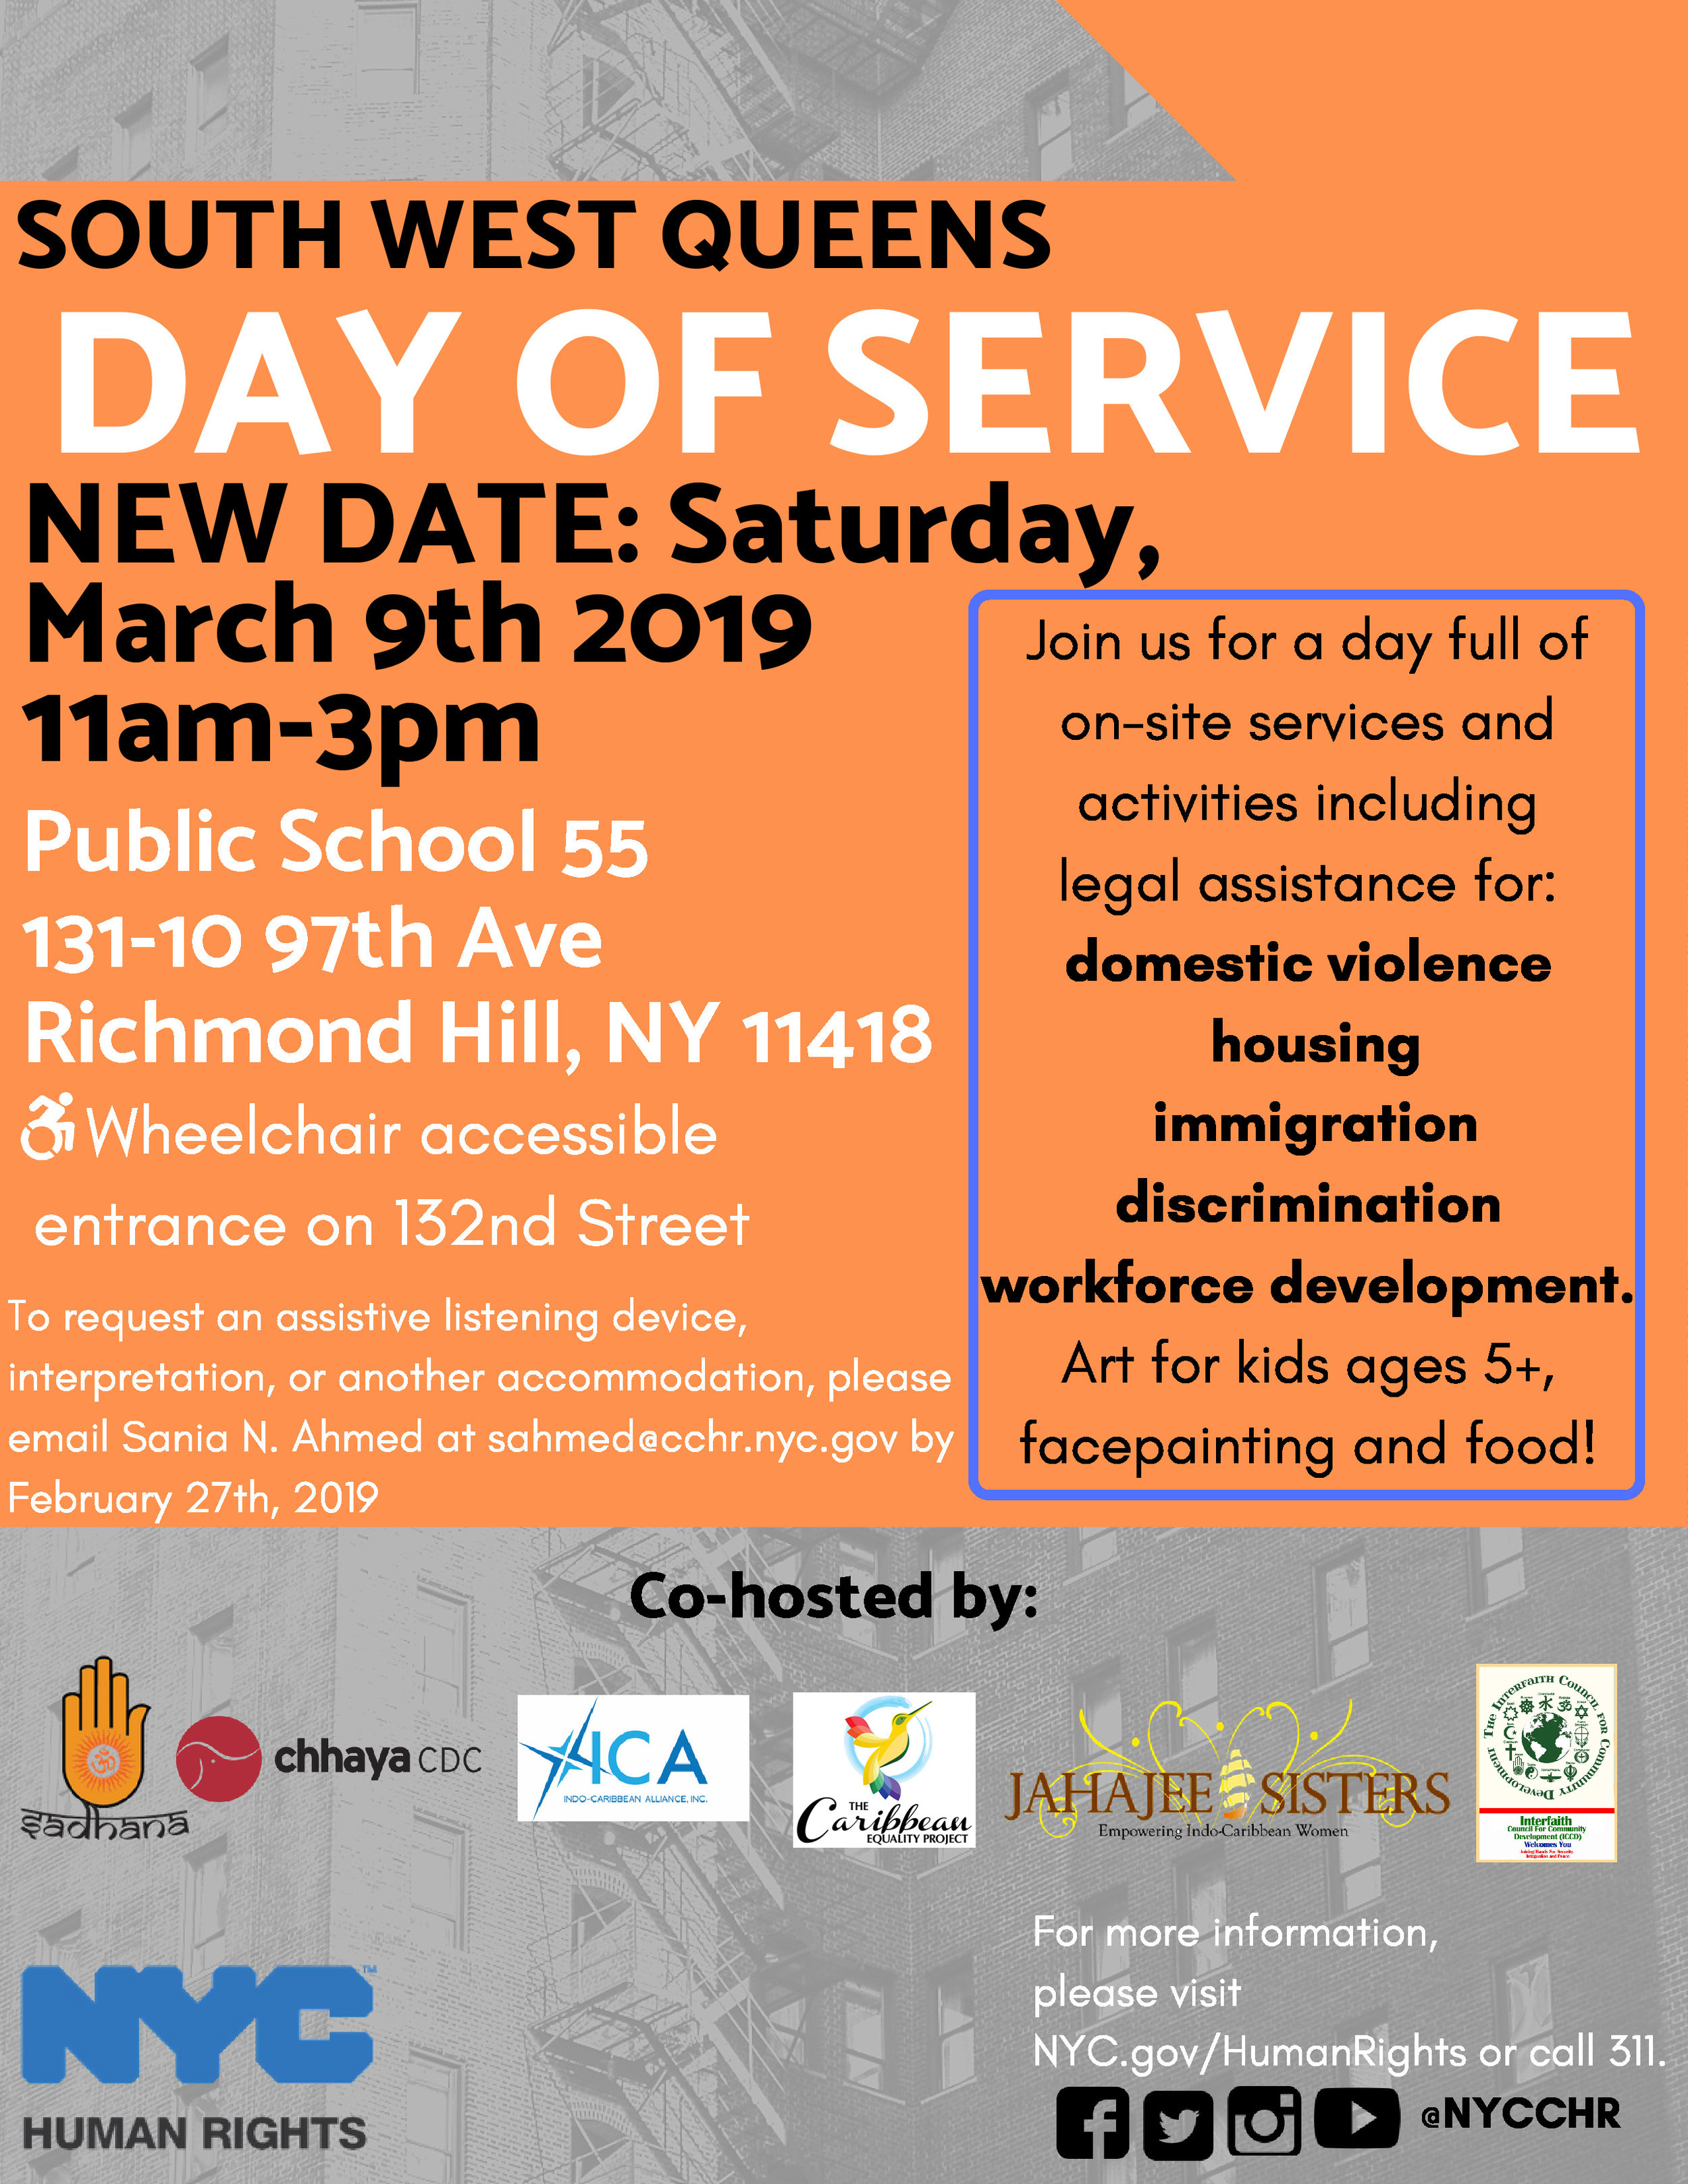 South West Queens Day of Service